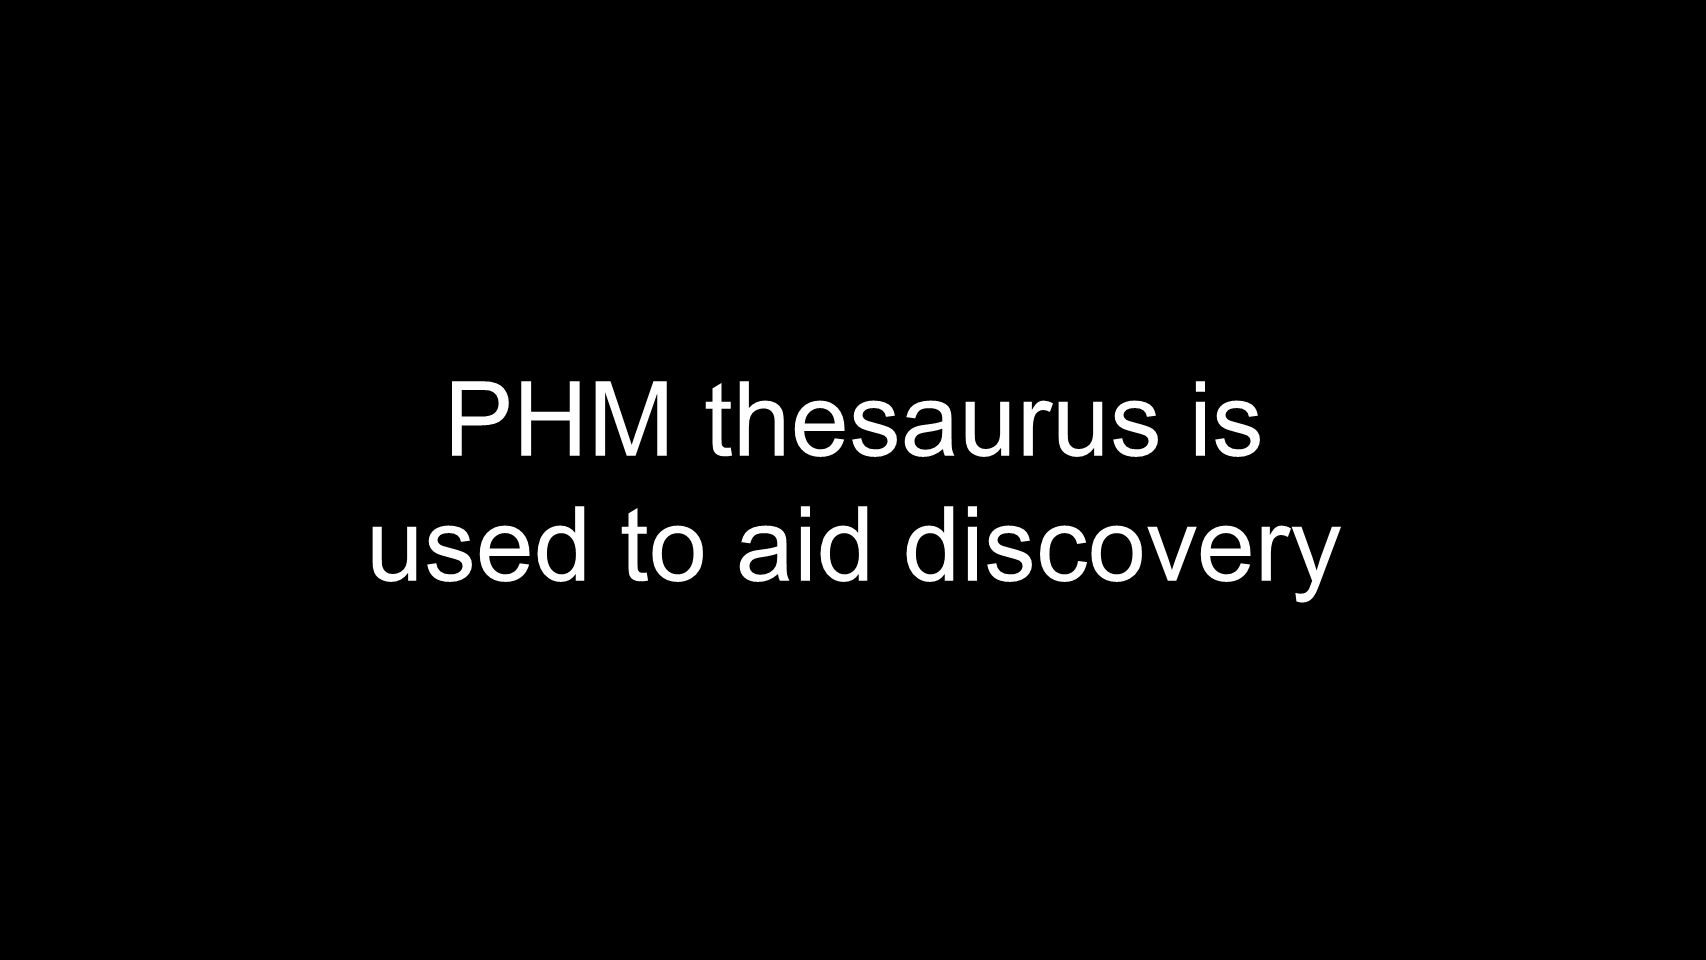 PHM thesaurus is used to aid discovery